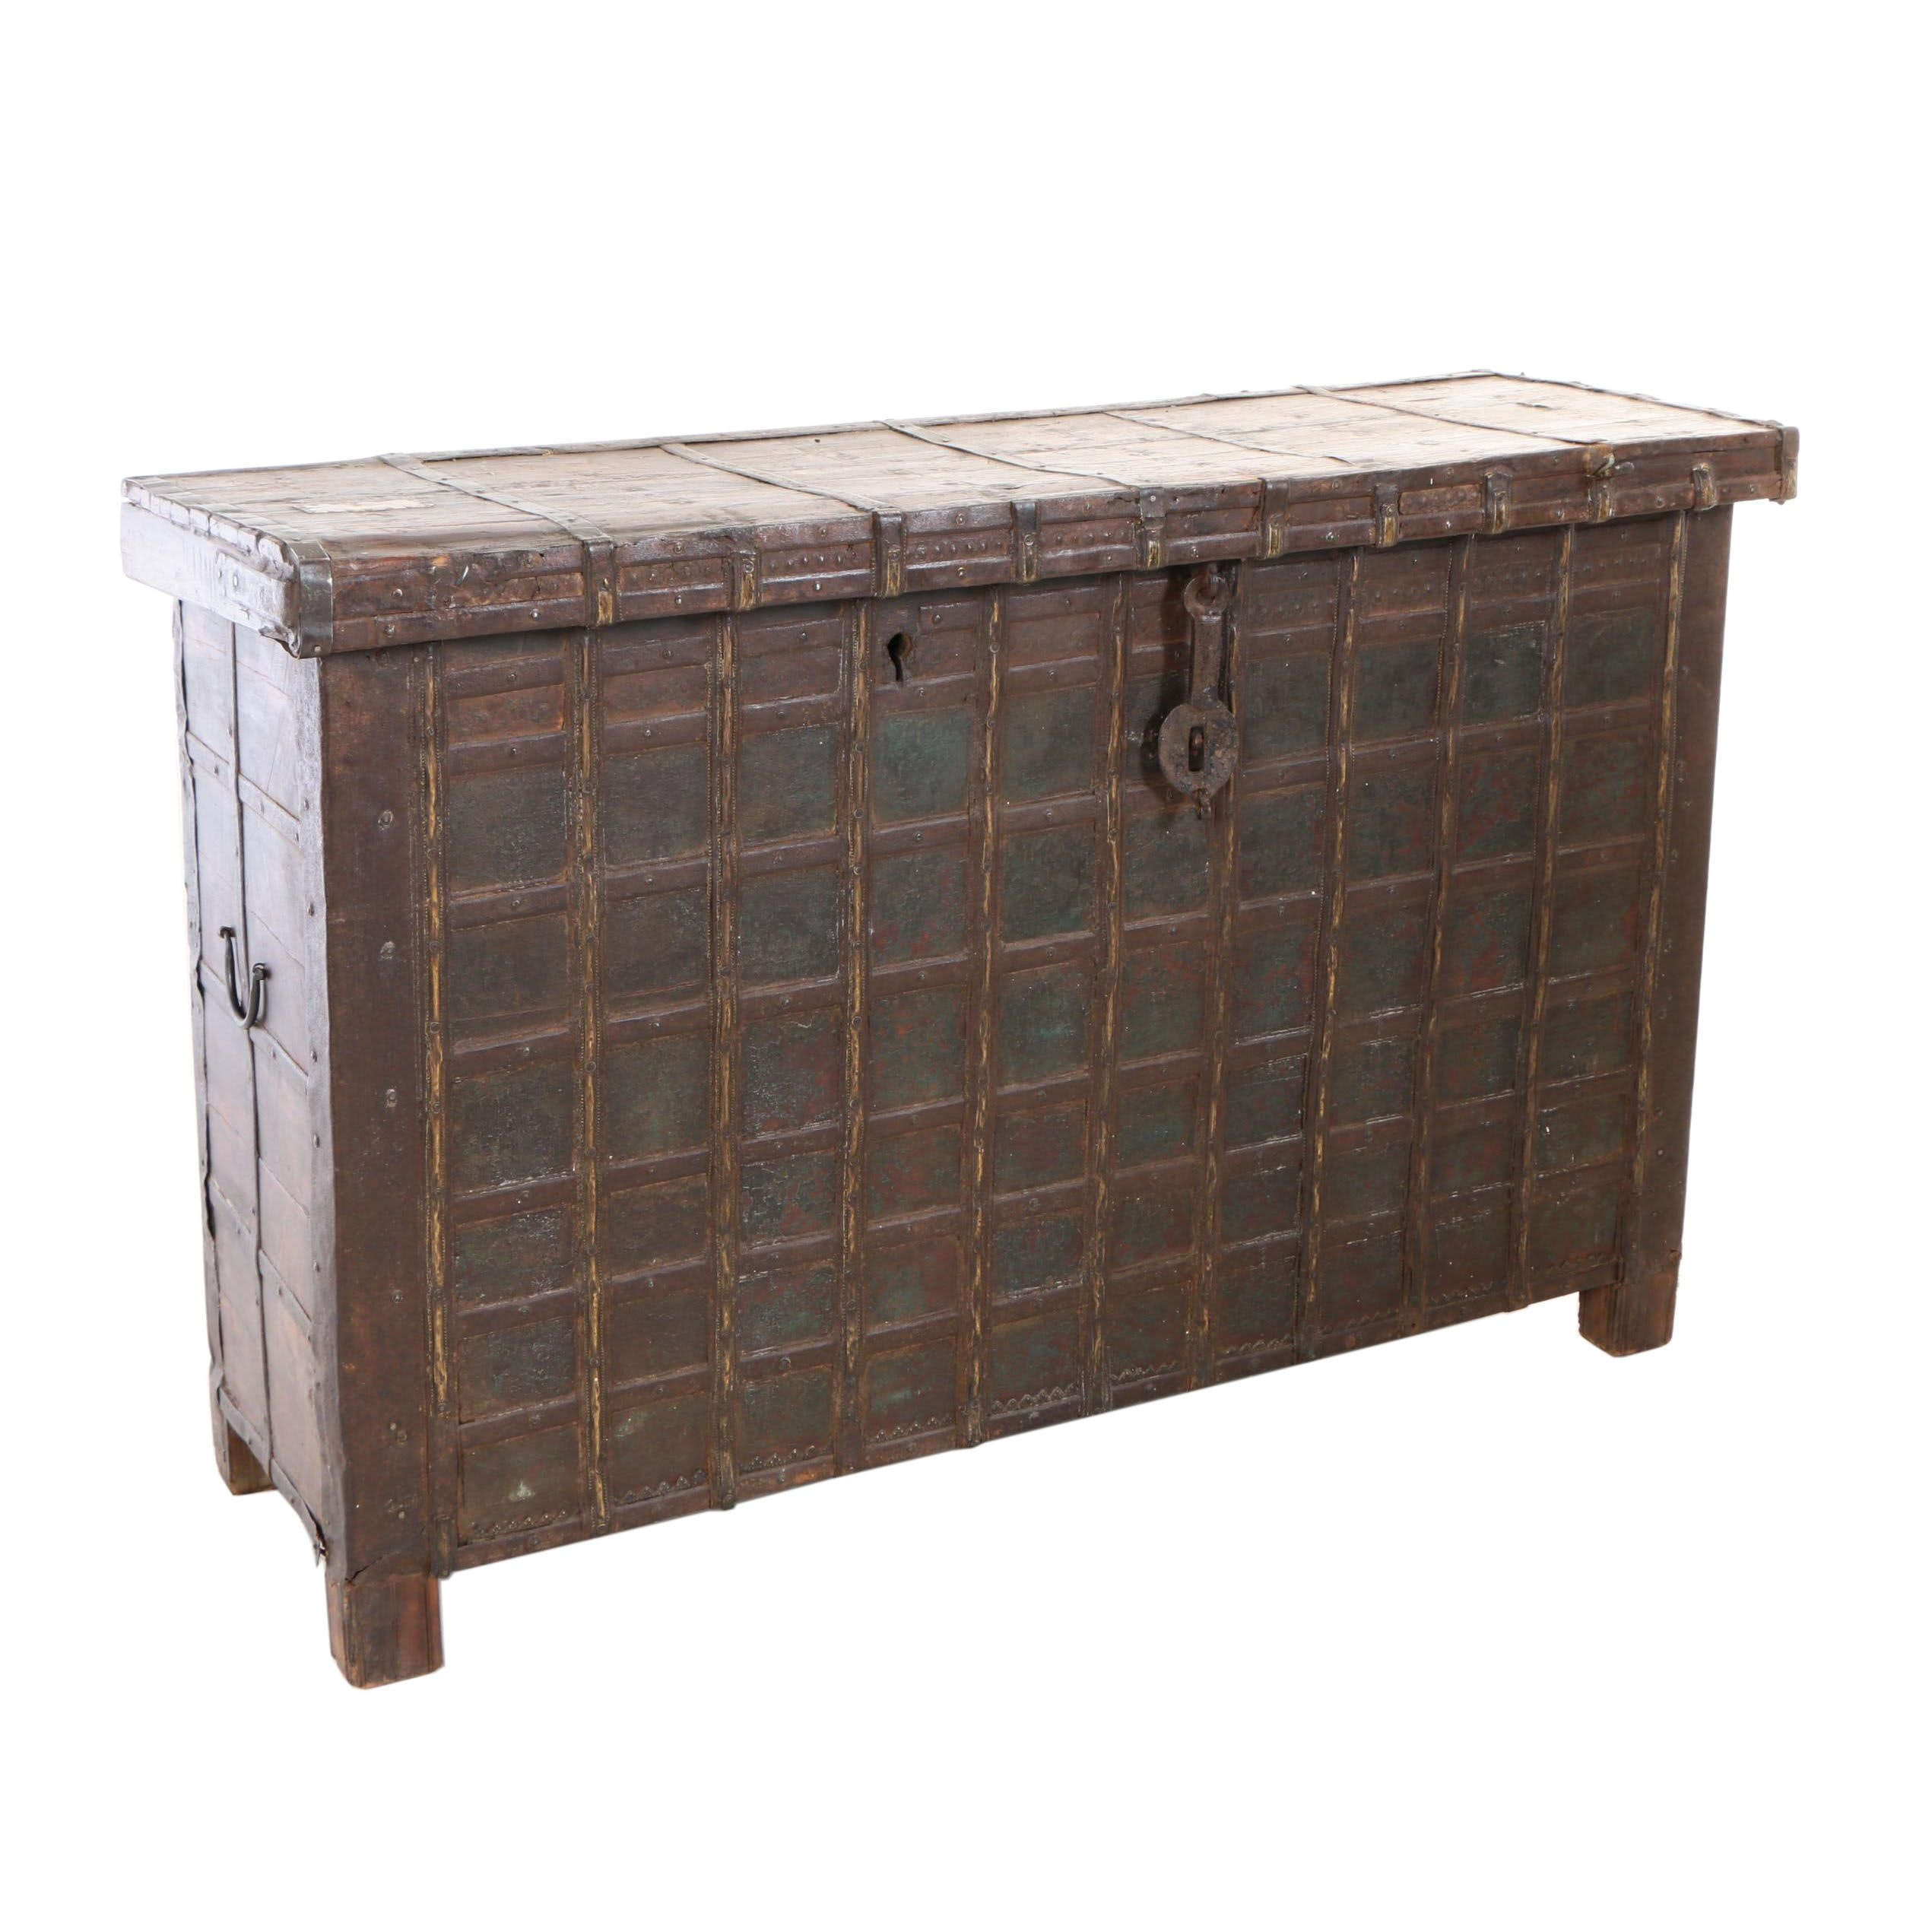 Metal-Bound and Iron-Mounted Teak Lift-Lid Chest, Probably India